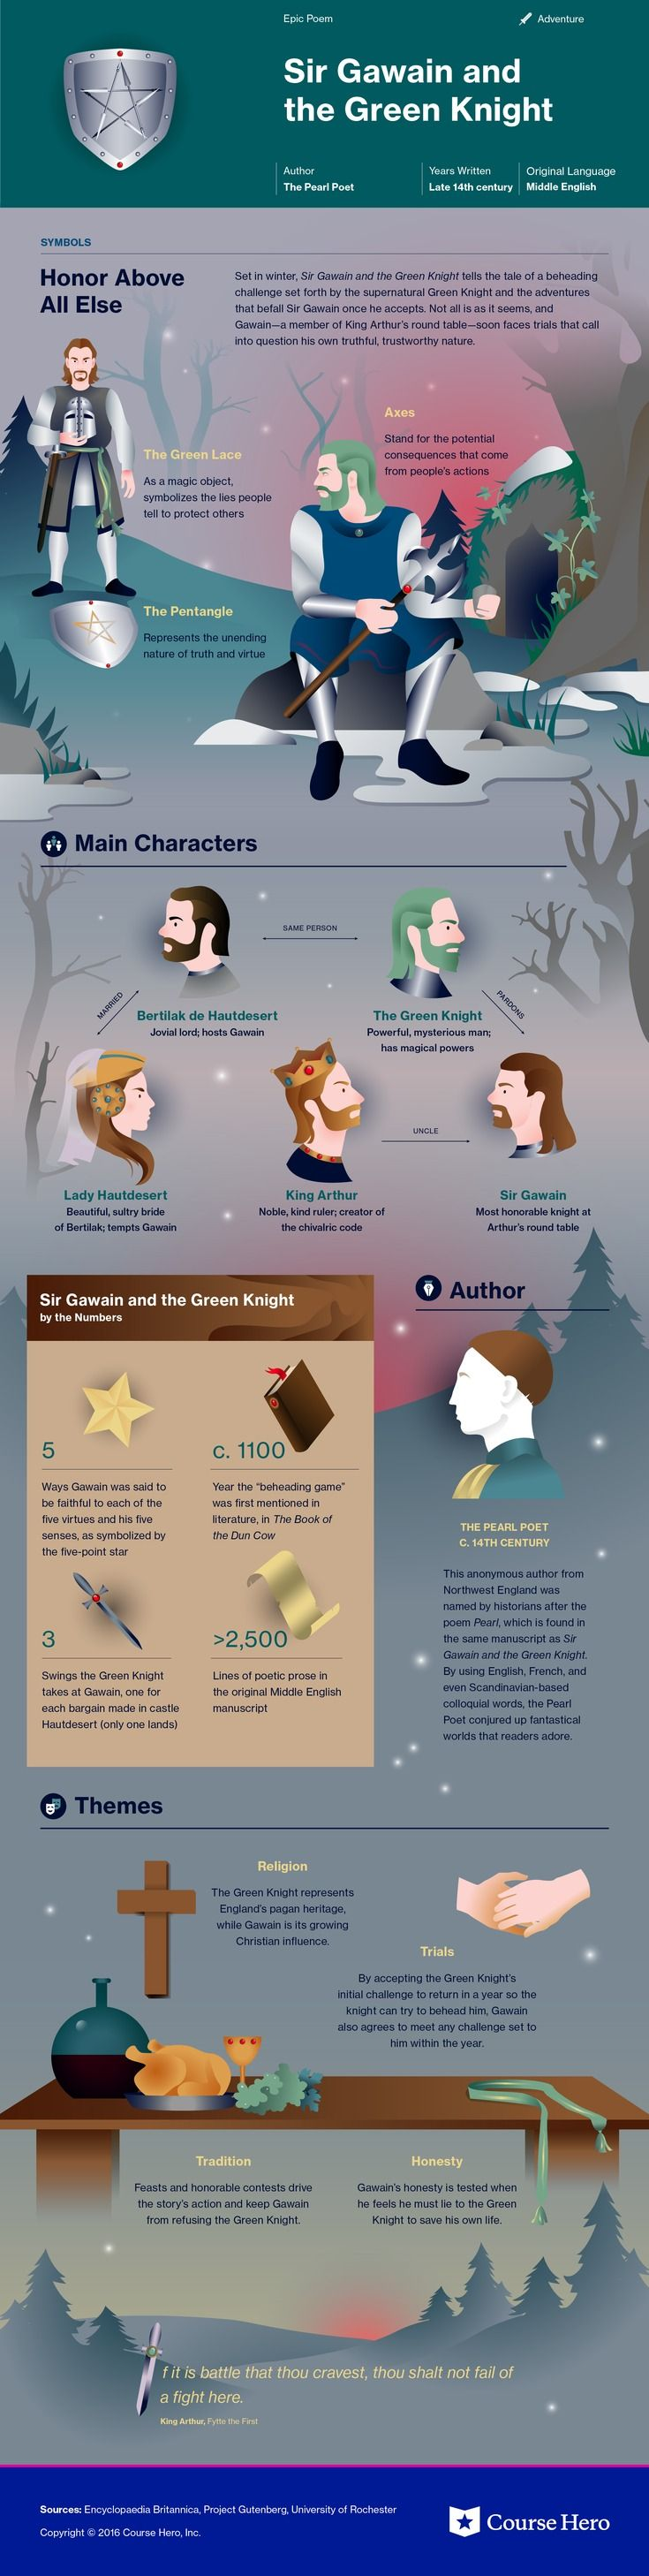 Sir Gawain and the Green Knight | Course Hero Infographic